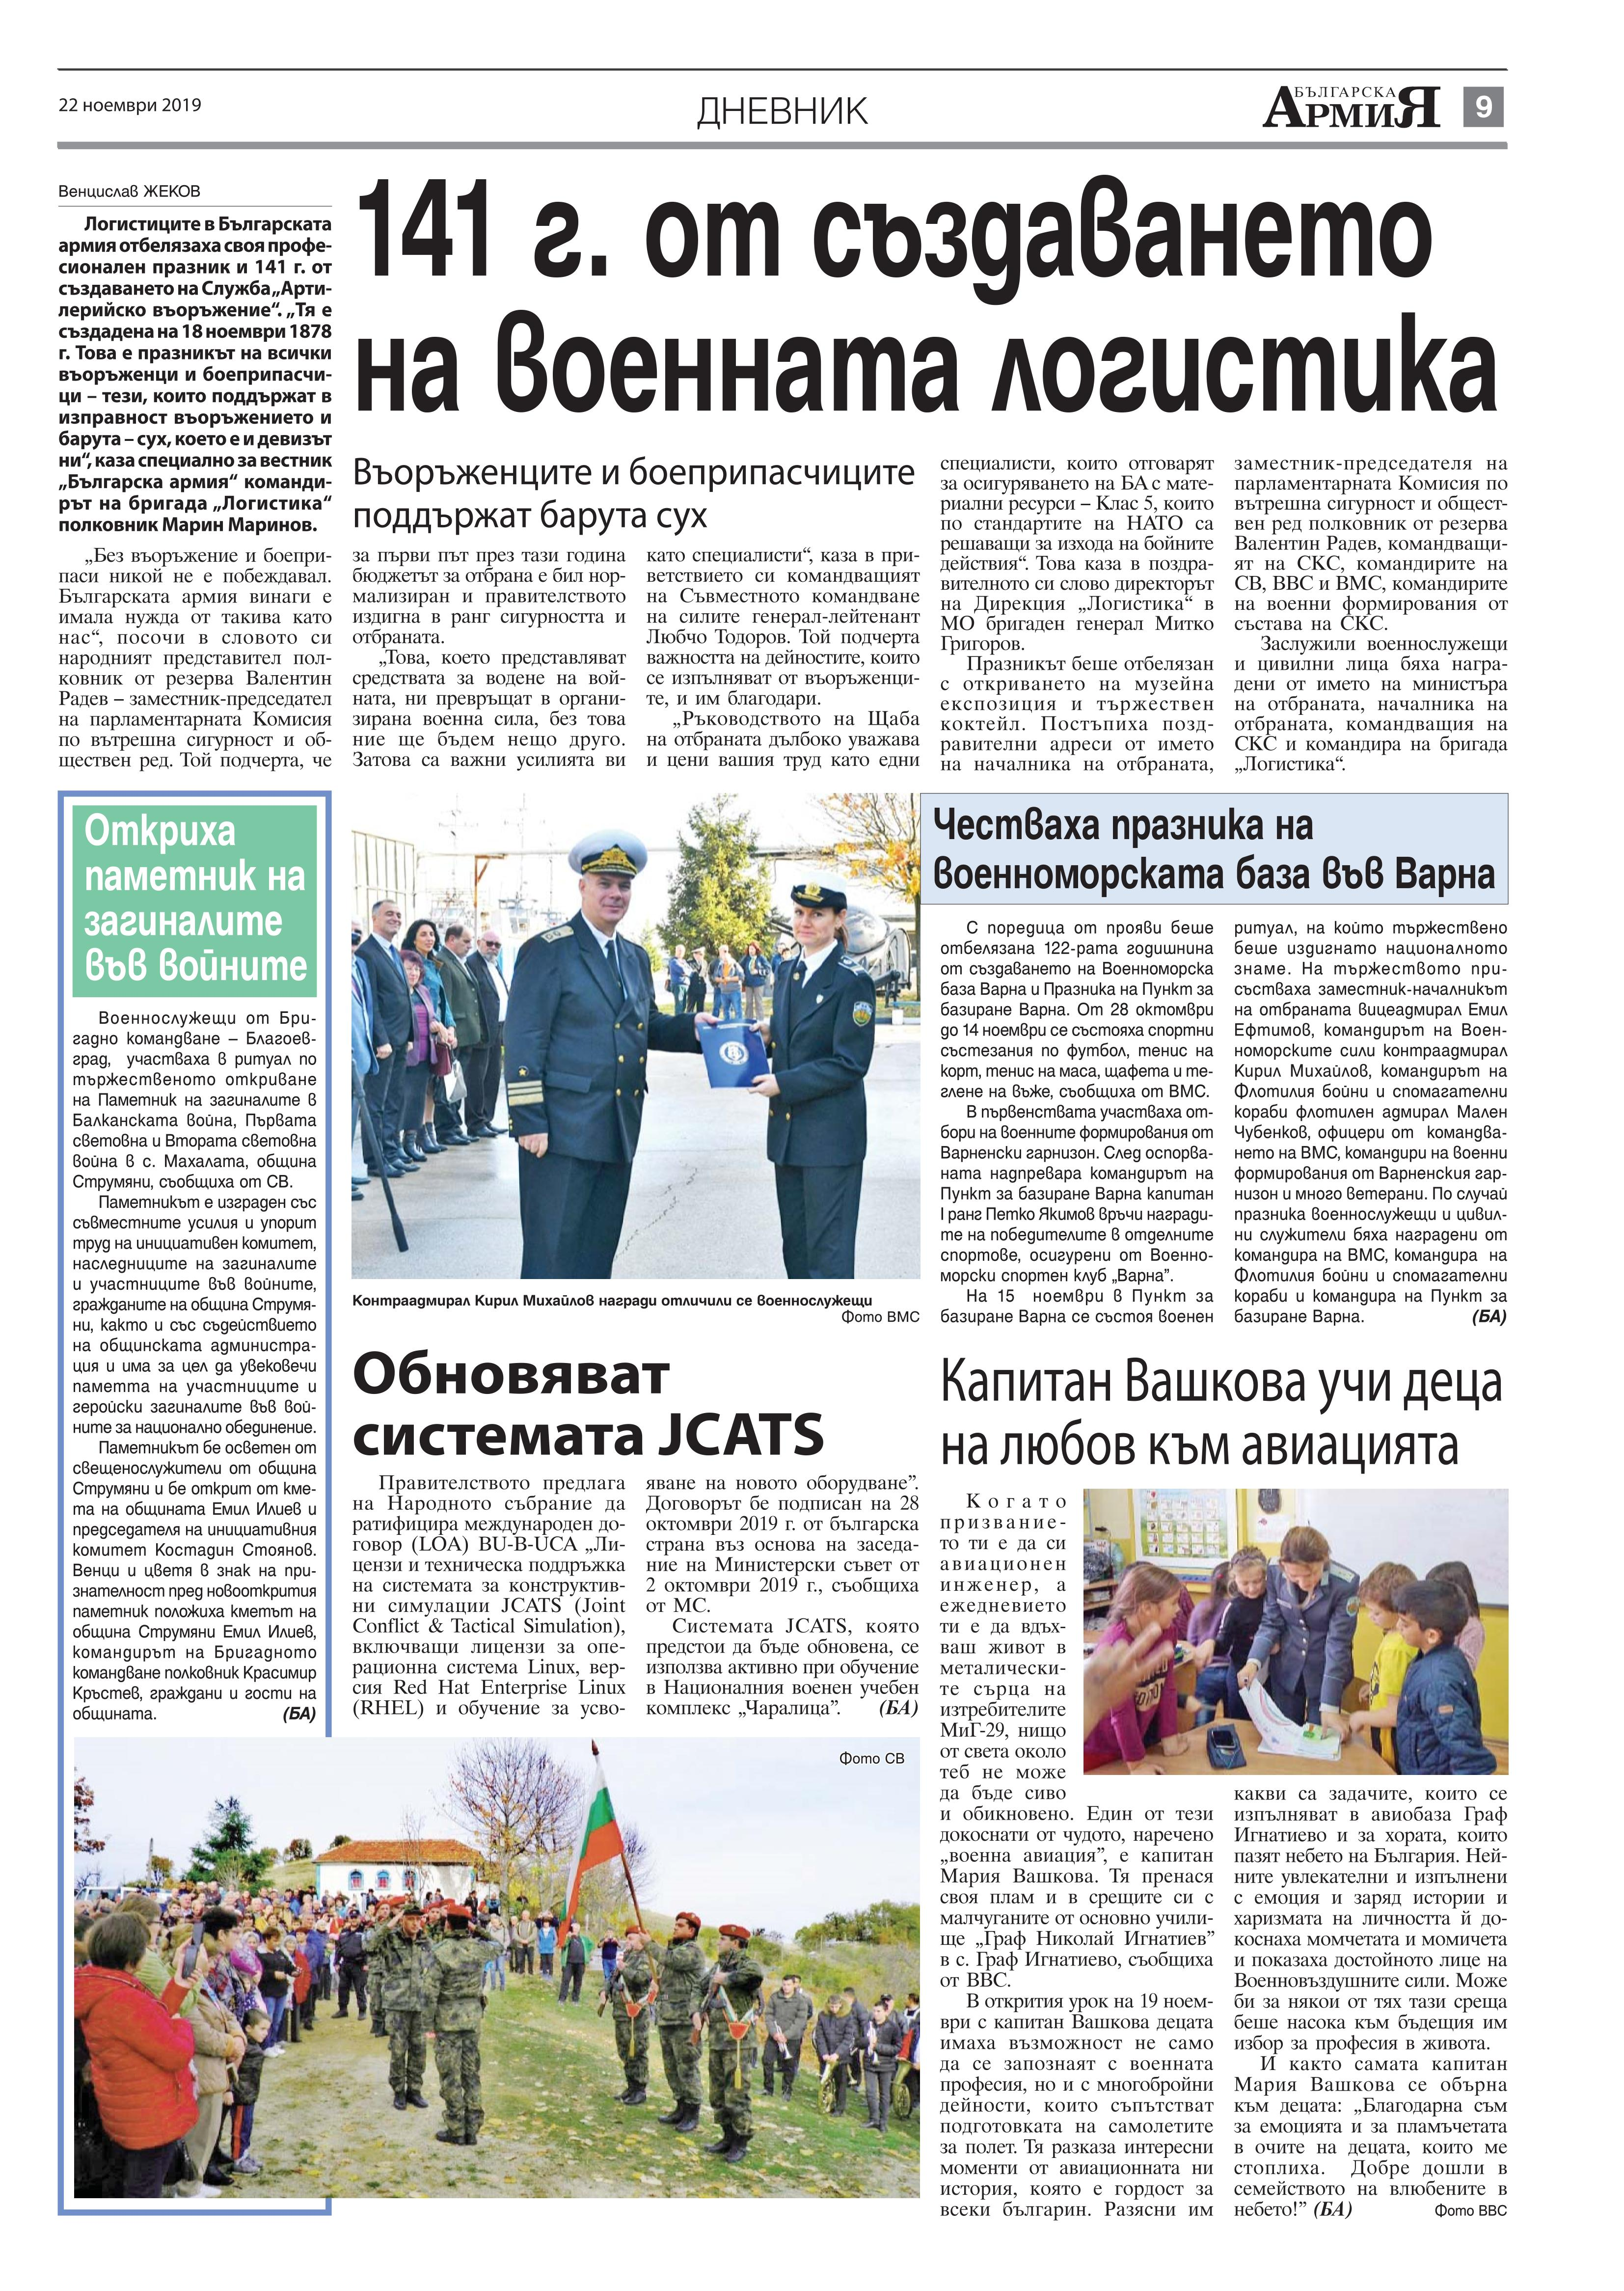 https://armymedia.bg/wp-content/uploads/2015/06/09.page1_-115.jpg